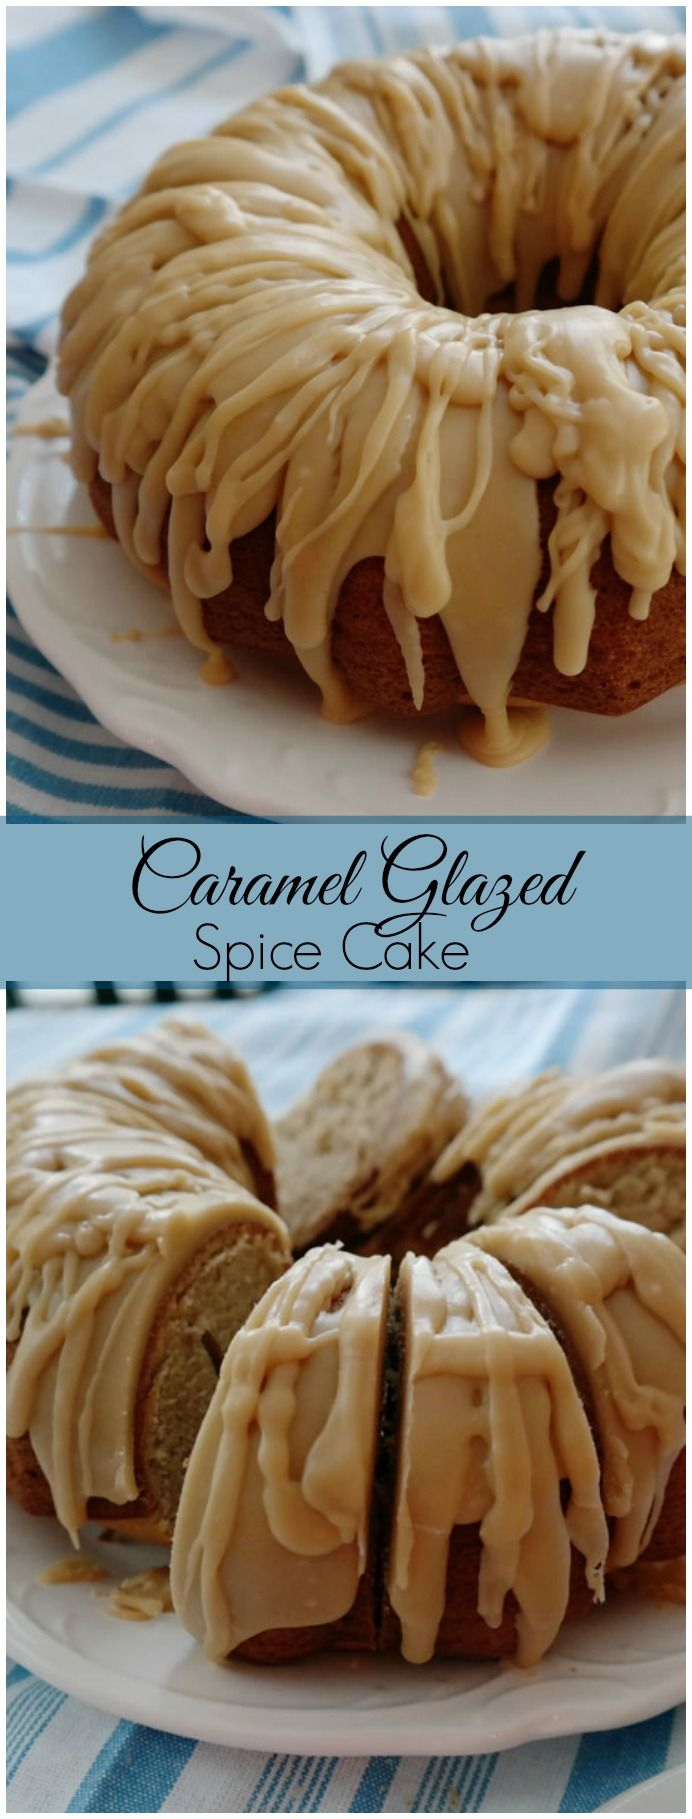 Caramel Glazed Spice Cake-start with a simple yellow box mix then with the addition of spices and a sweet caramel glaze you have something that will rival any cake made from scratch!